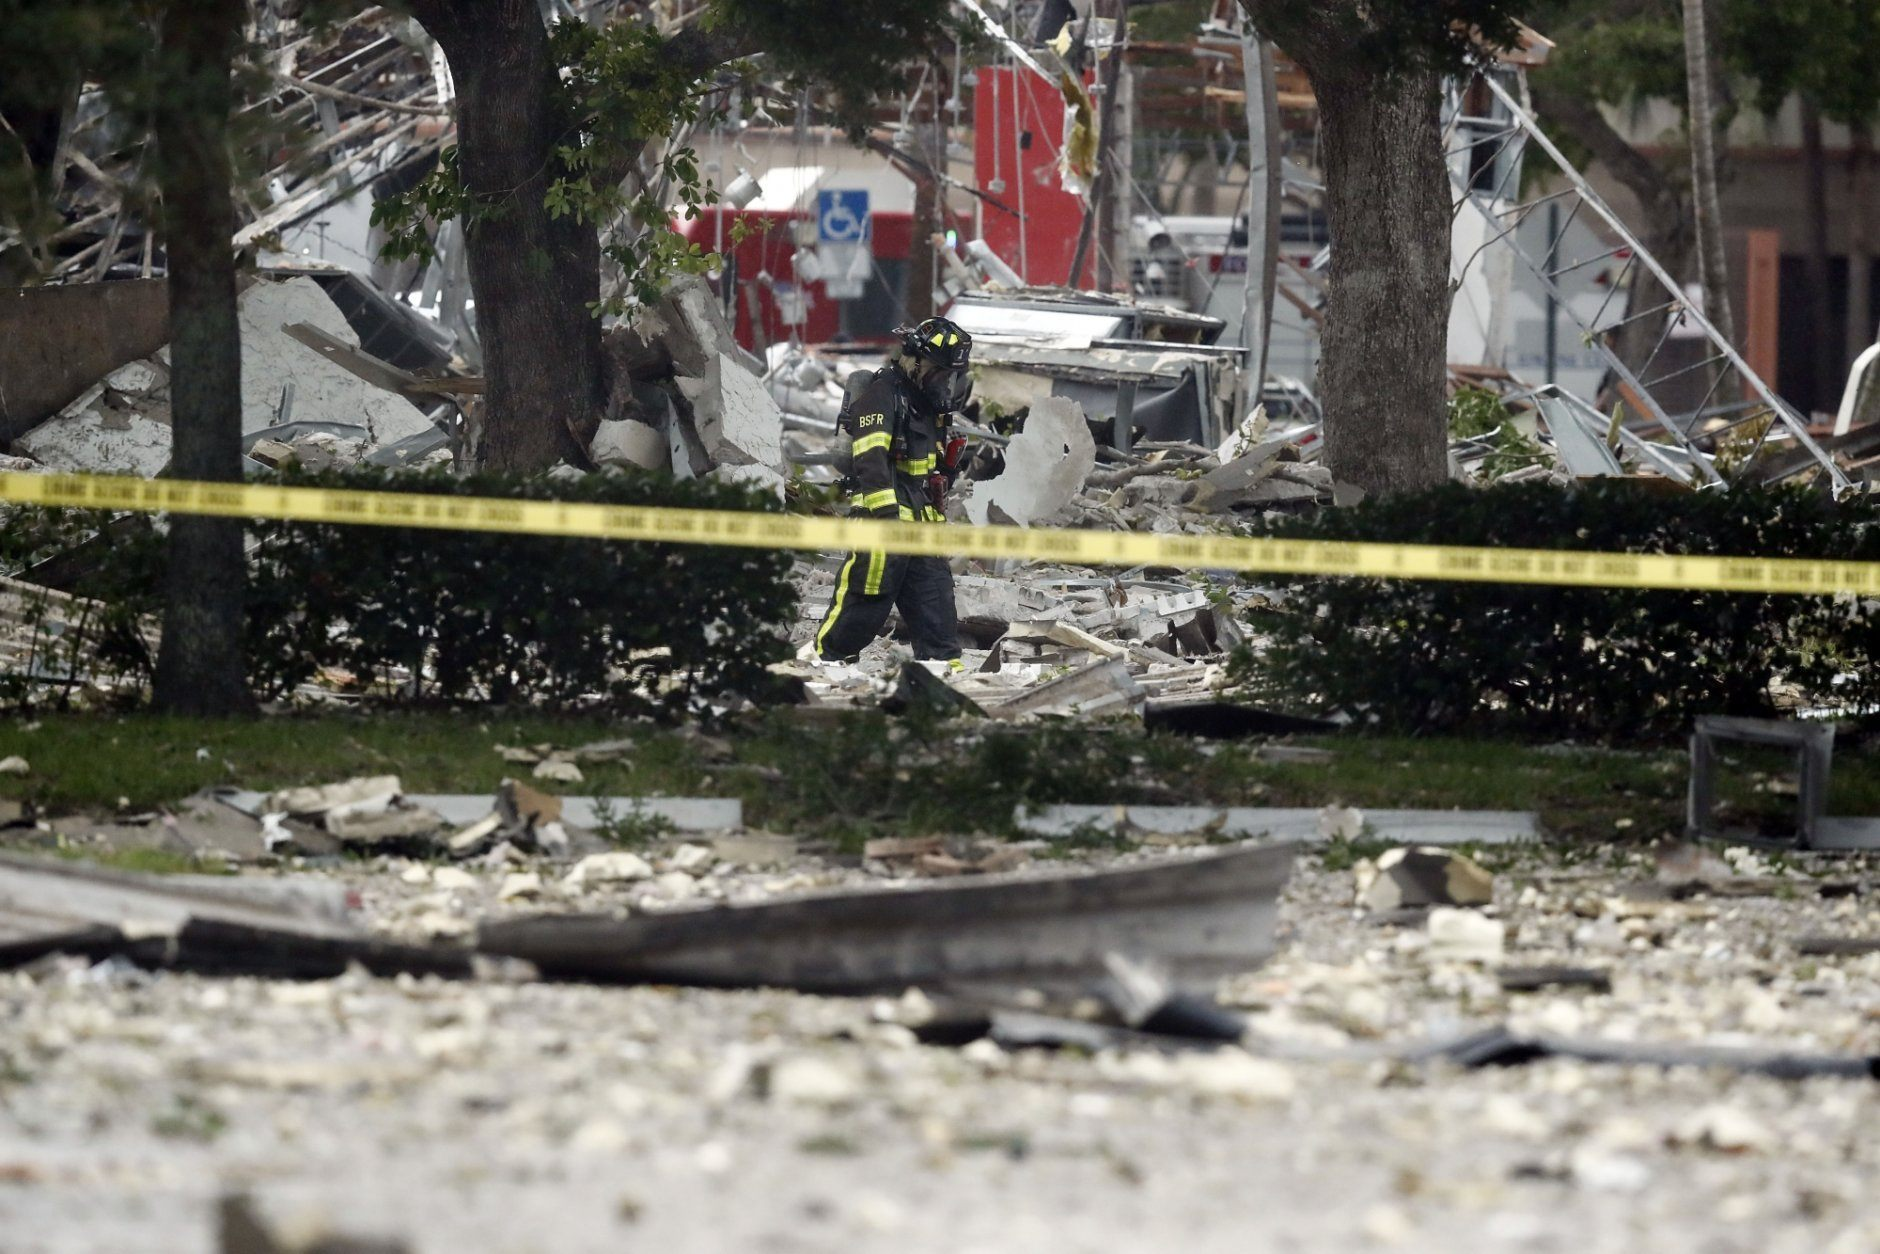 21 Hurt In Shopping Plaza Blast Gas Lines Found Ruptured Wtop